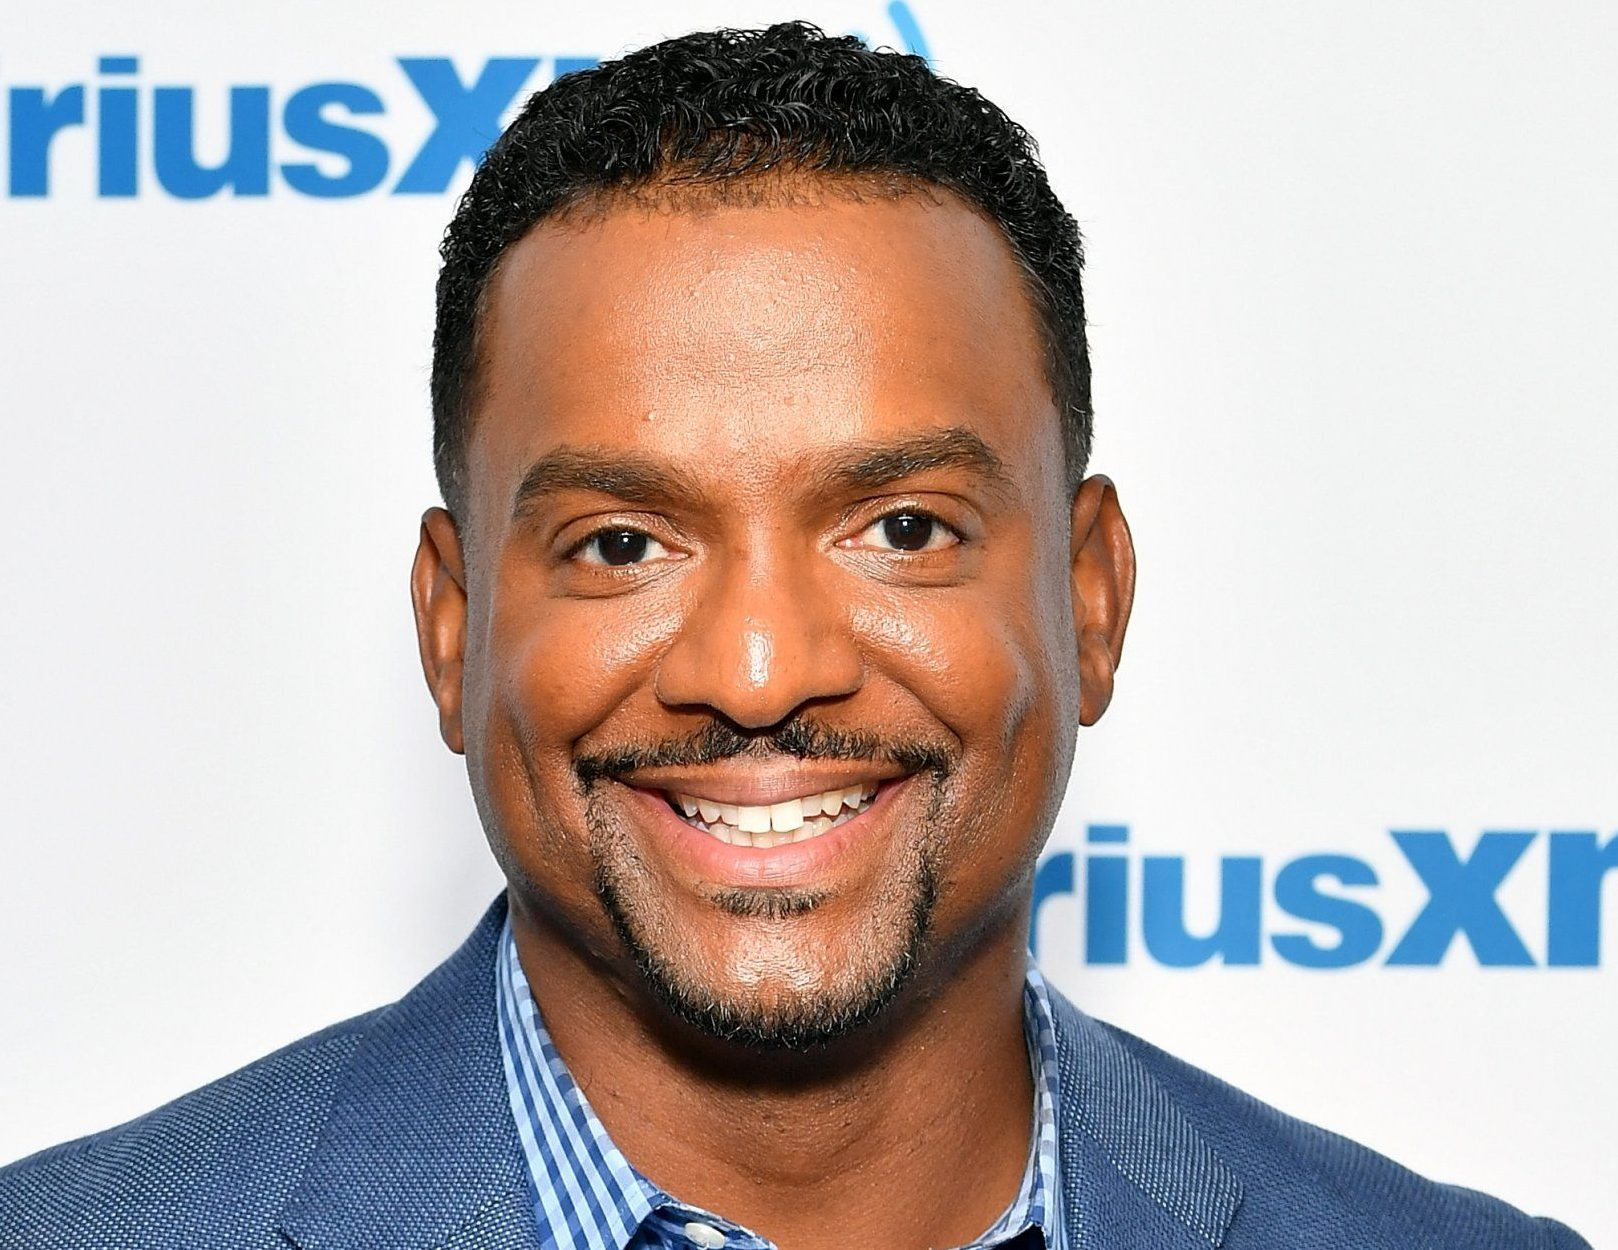 NEW YORK, NY - OCTOBER 04: (EXCLUSIVE COVERAGE) Actor/comedian Alfonso Ribeiro visits SiriusXM Studios on October 4, 2018 in New York City. (Photo by Slaven Vlasic/Getty Images)